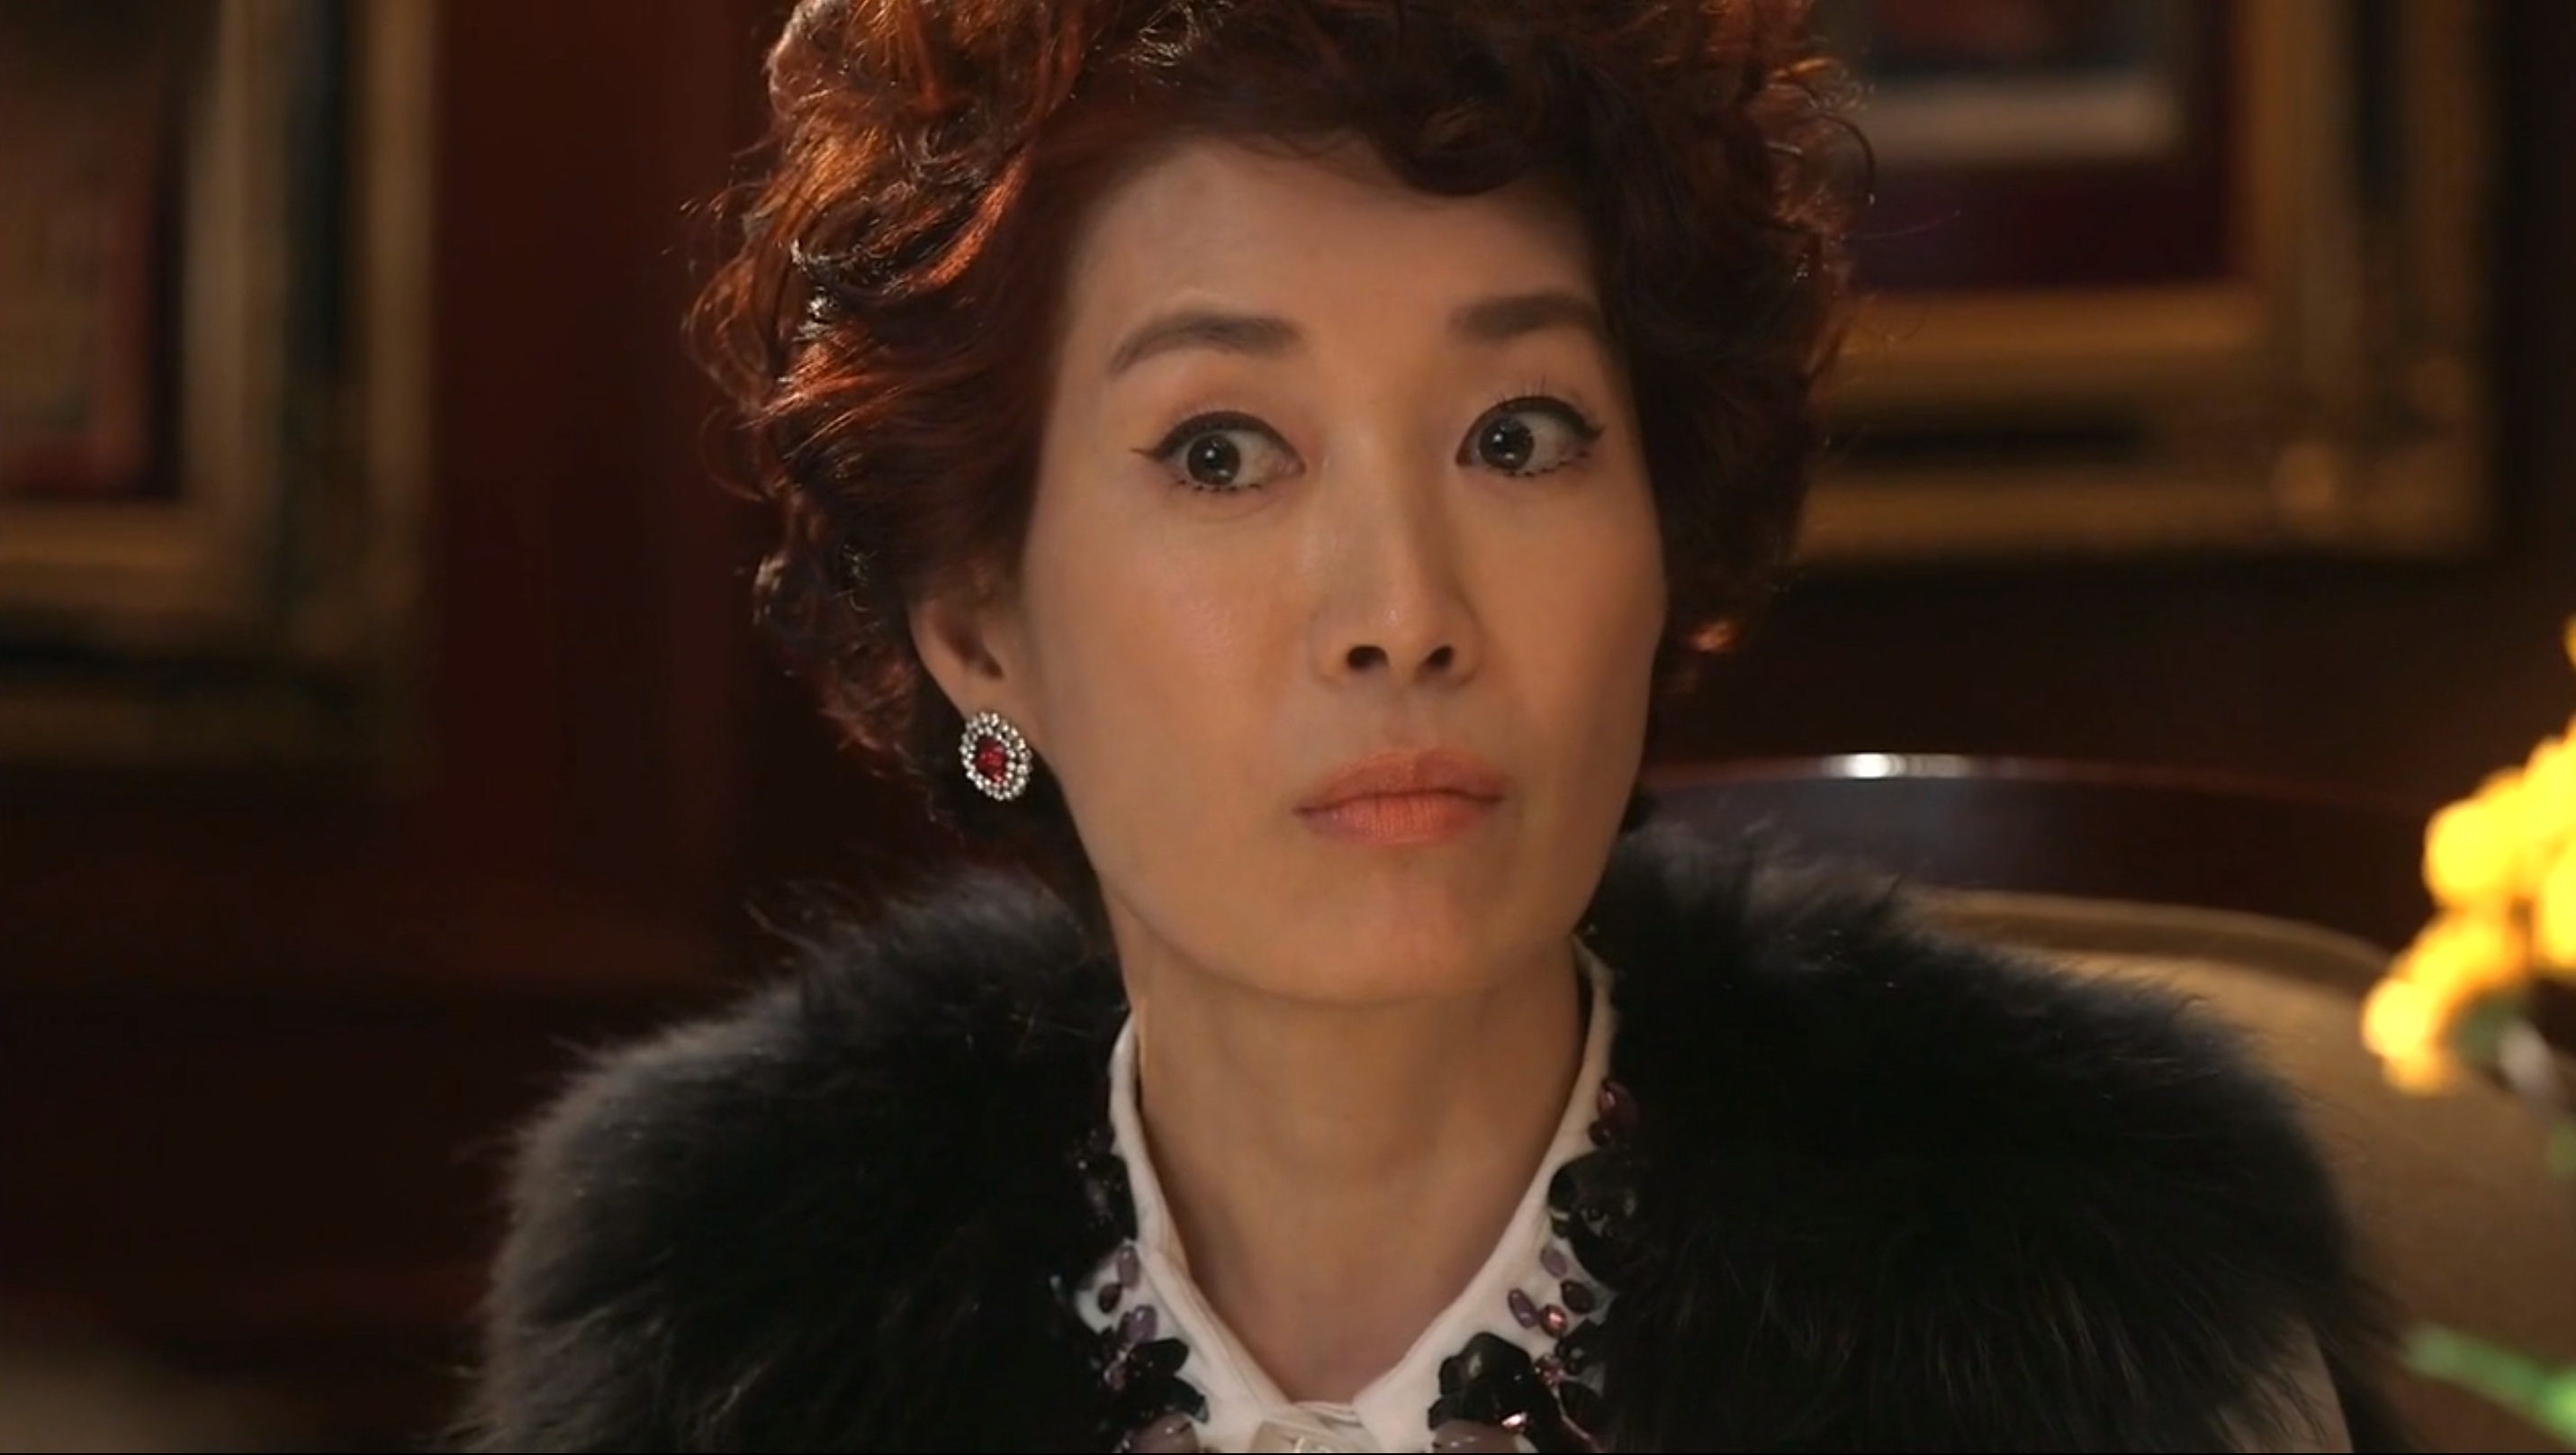 Mother of Song Yi